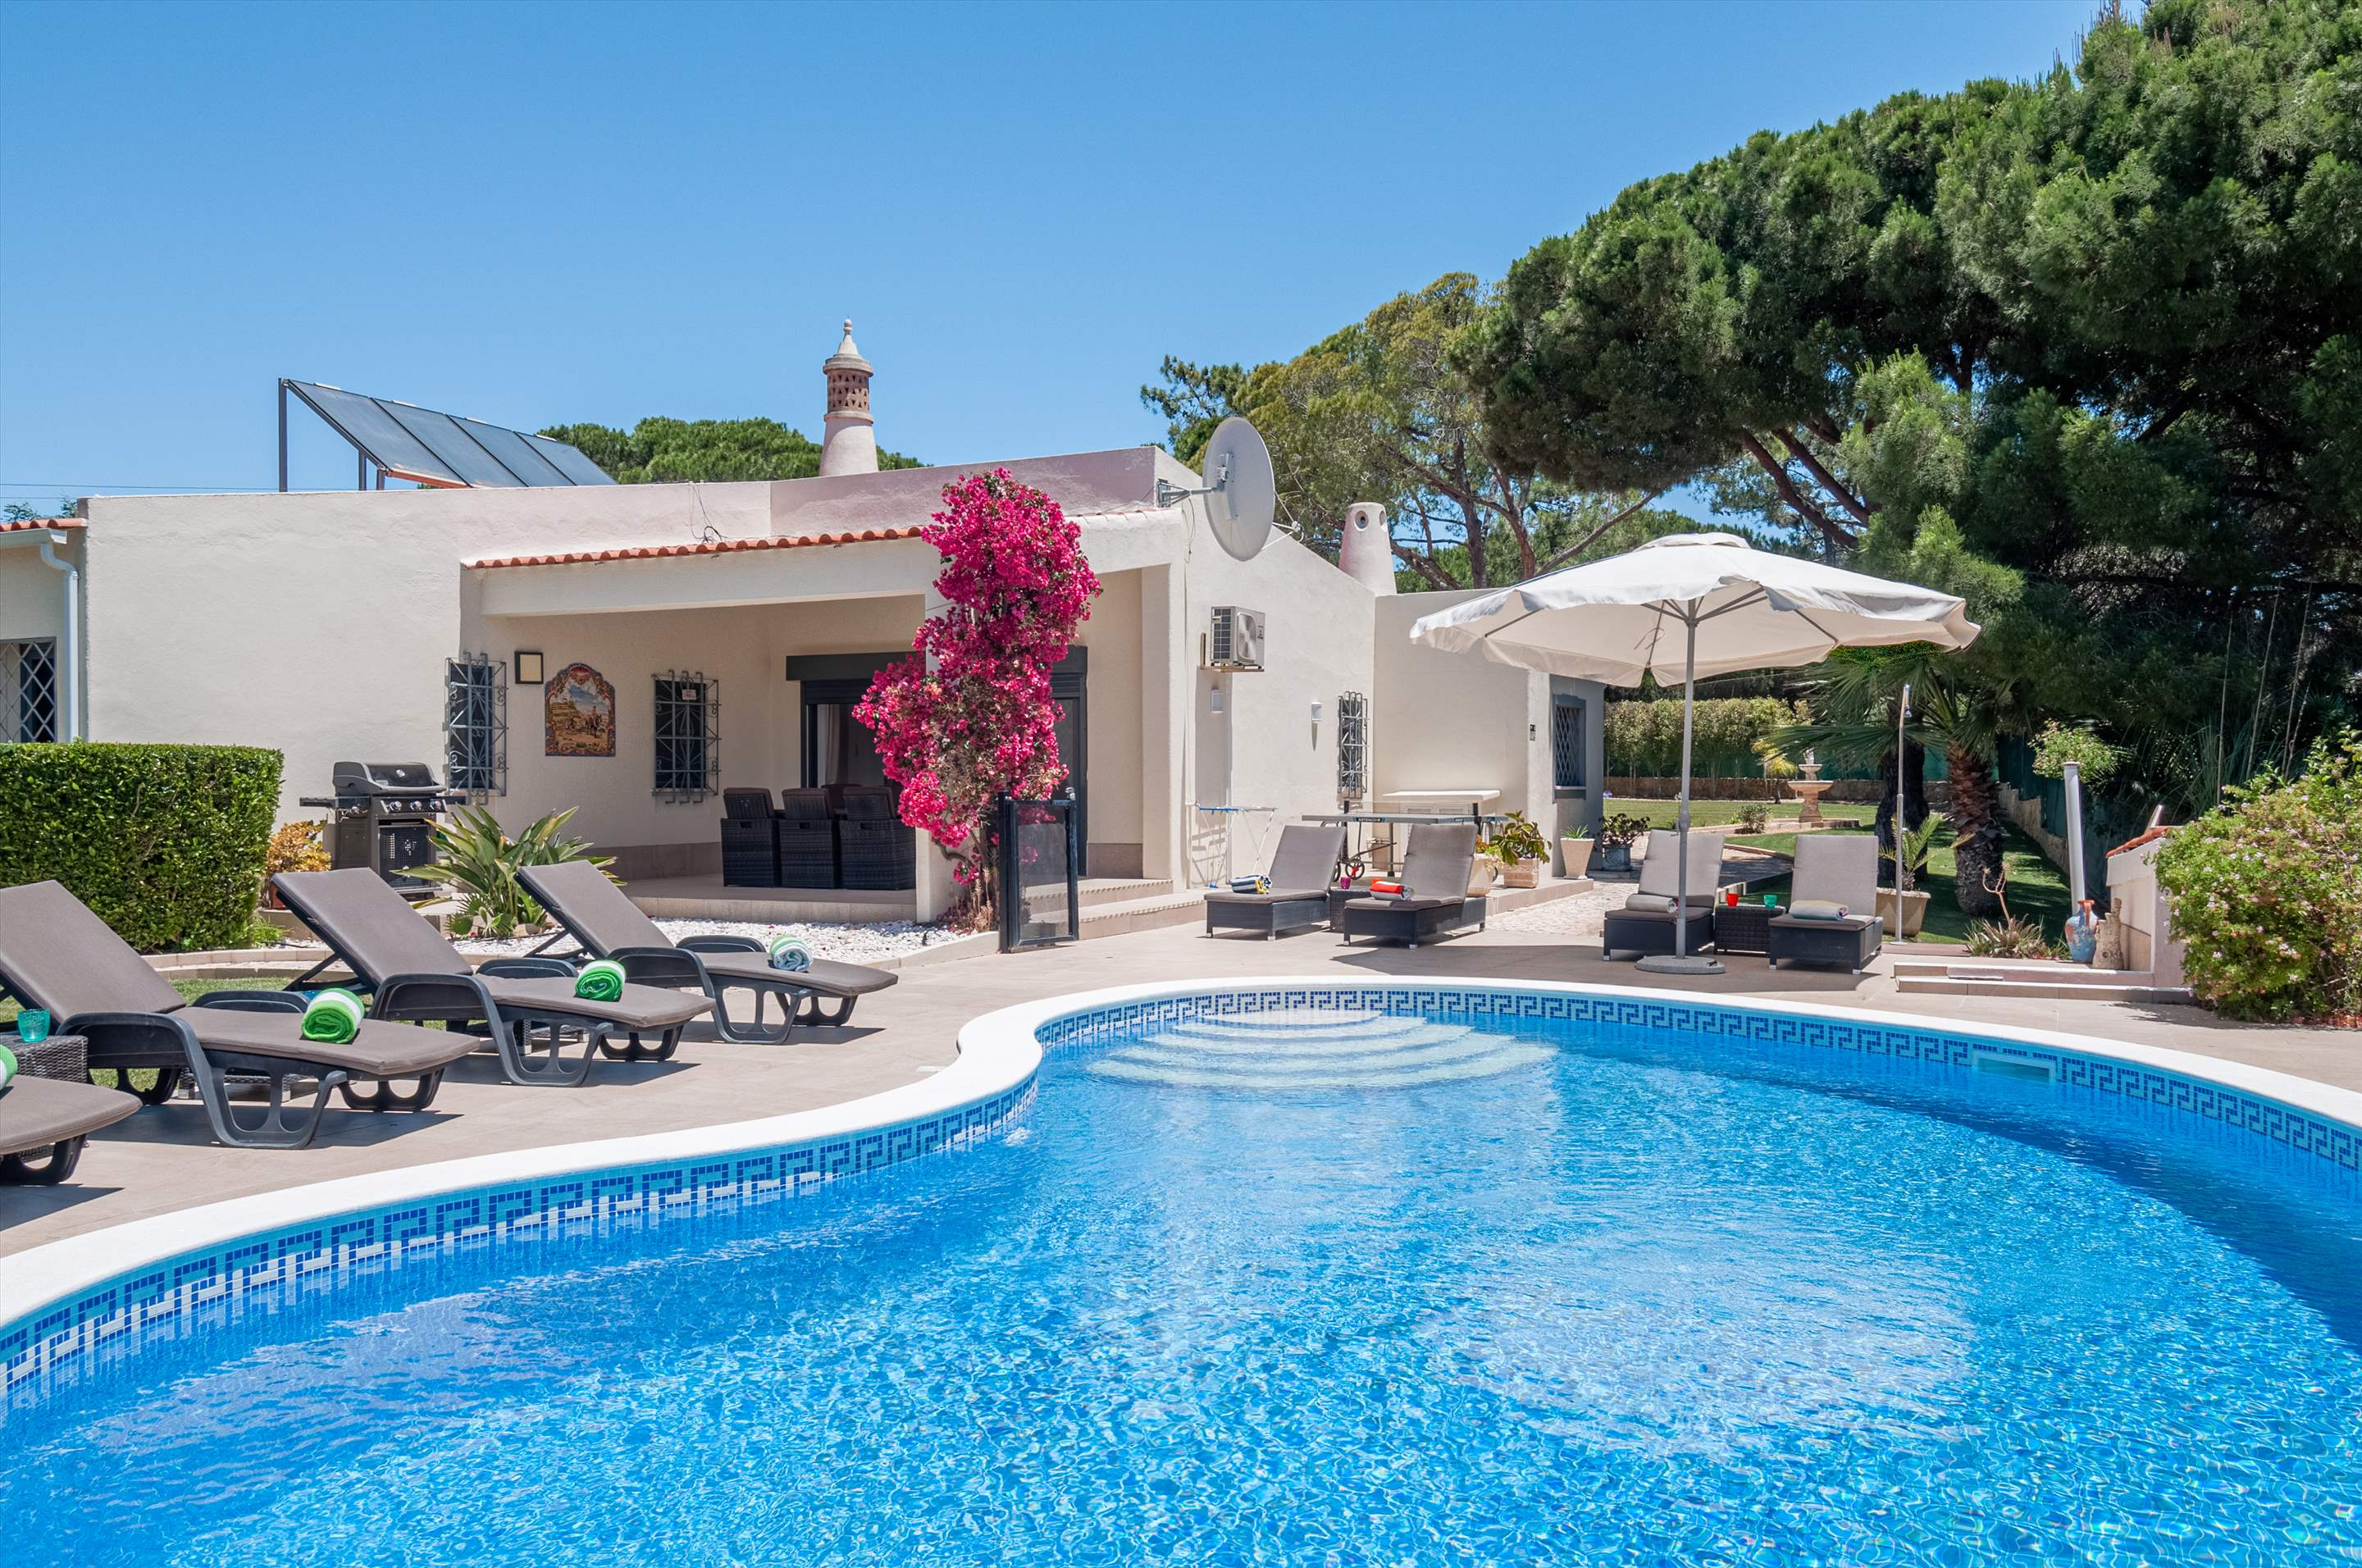 Villa Quinta Francisco, 4 bedroom villa in Vale do Lobo, Algarve Photo #1